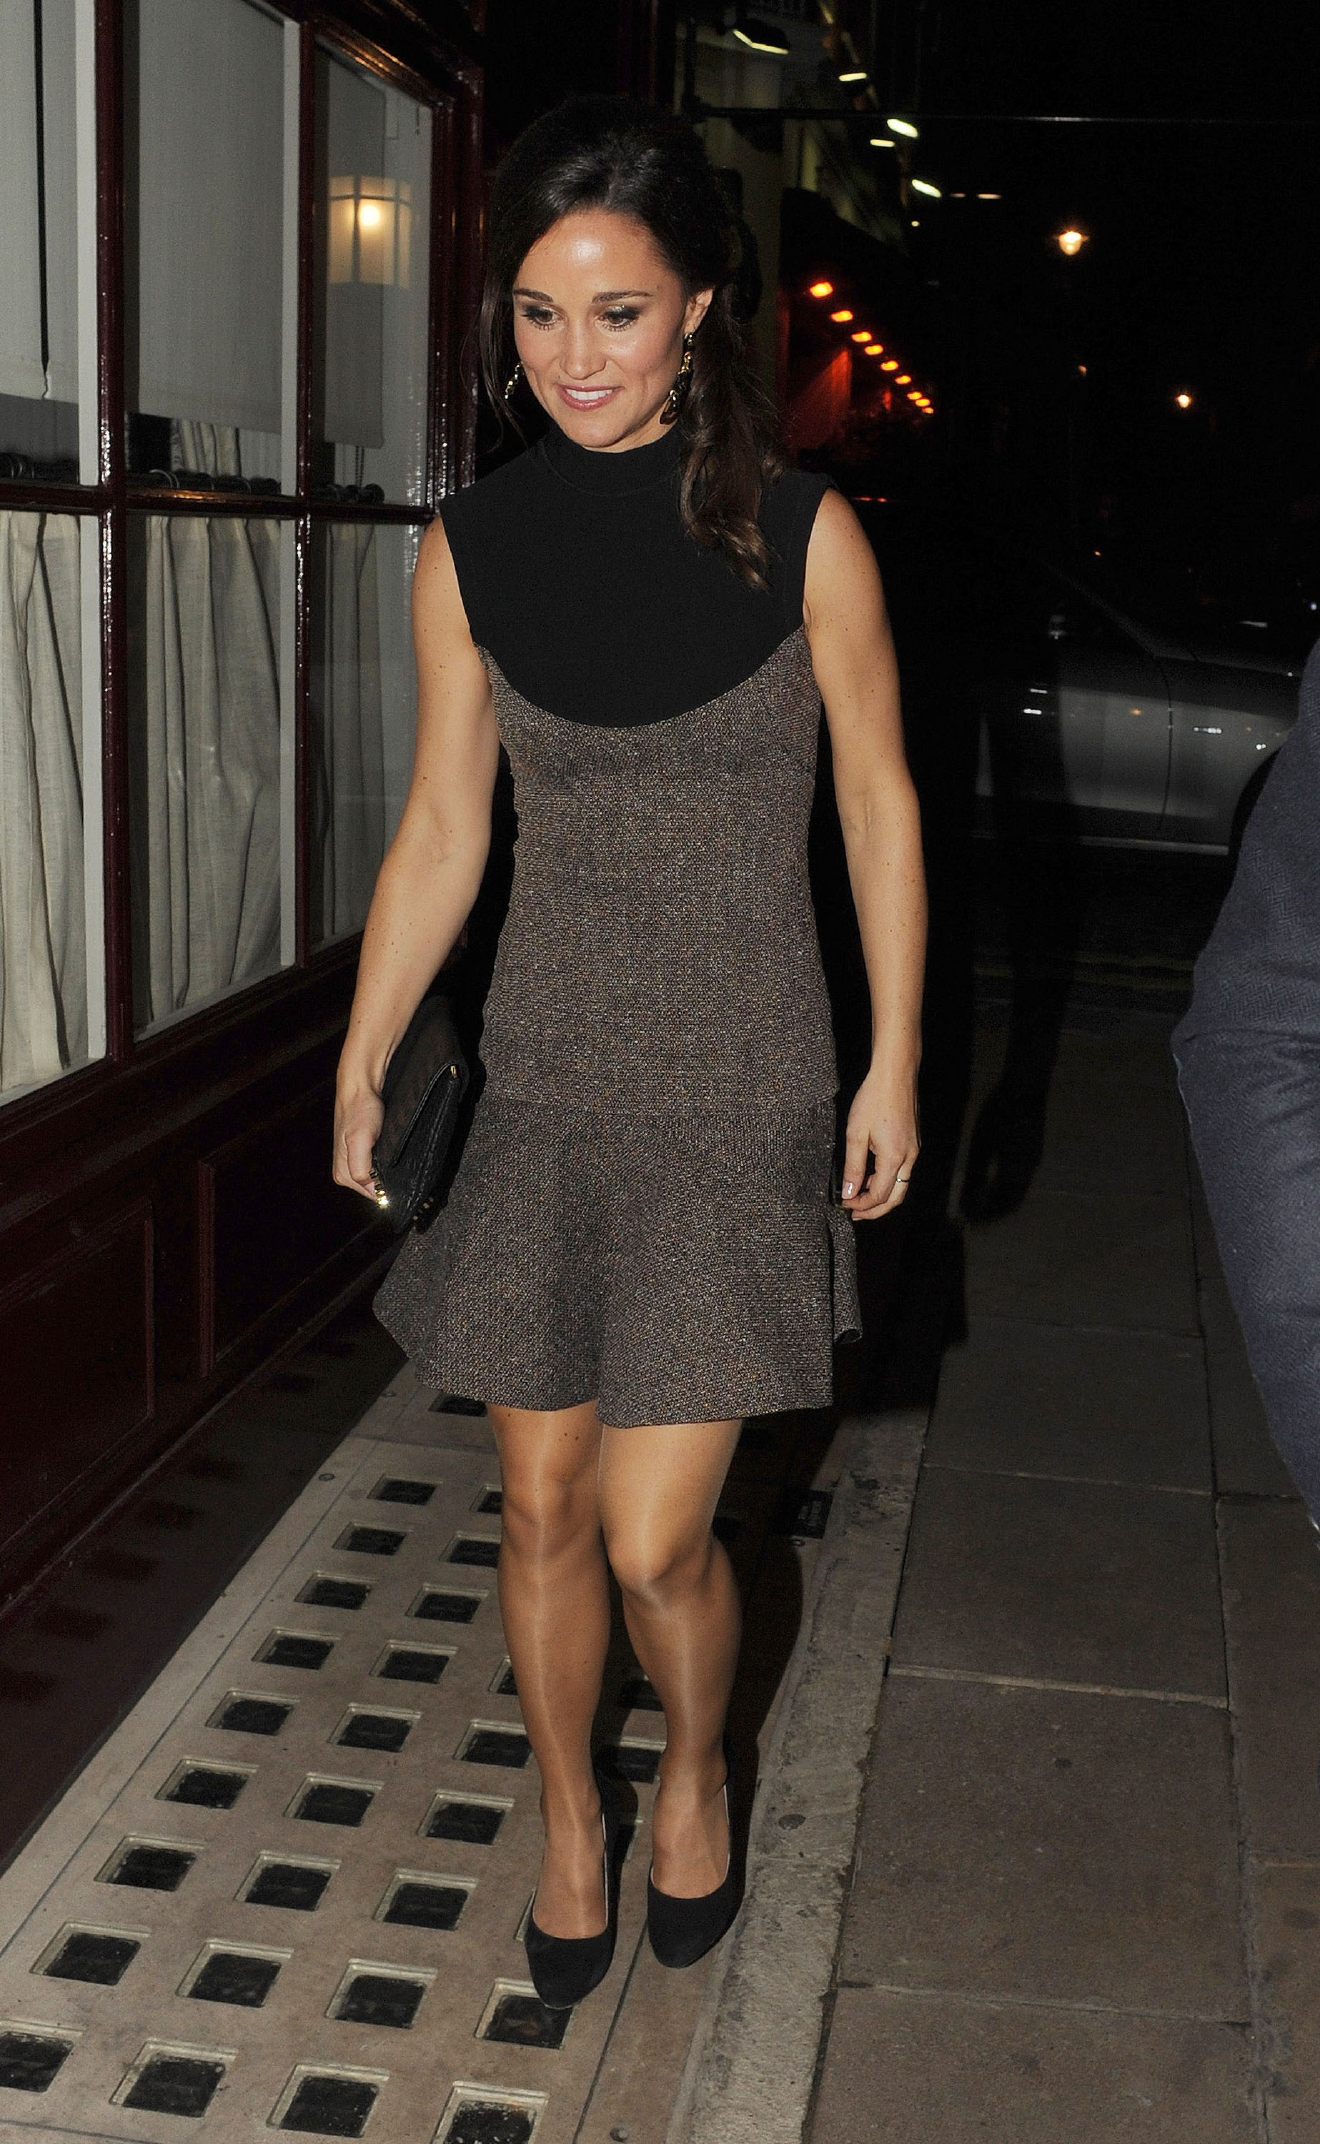 Pippa Middleton leaving Lou lou's members club in Mayfair. London, England - 25.10.12  Featuring: Pippa Middleton Where: London, United Kingdom When: 25 Oct 2012 Credit: WENN